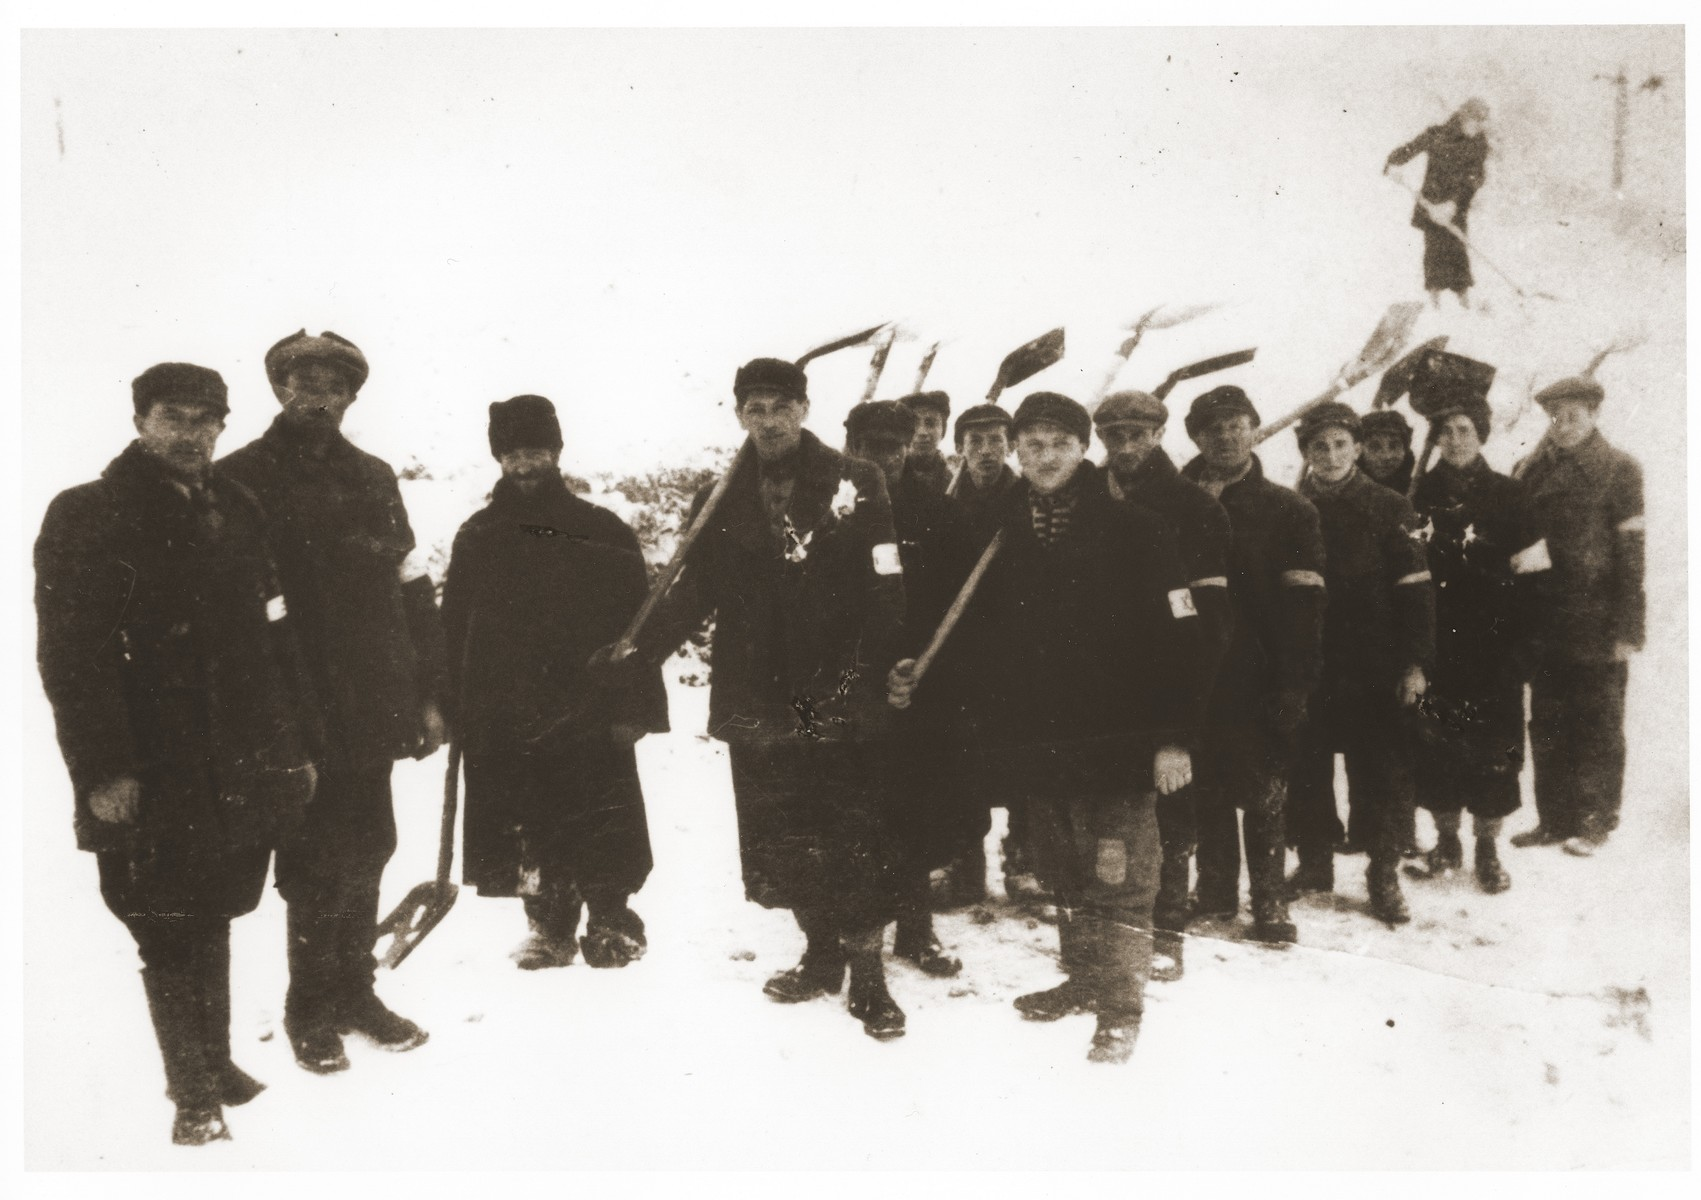 Jewish laborers wearing armbands are forced to shovel snow in Slawkow, Poland.  Chaim Szlojme Imerglik is on the far left. Also pictured is  Joseph Gleitman, the fourth person from the left.